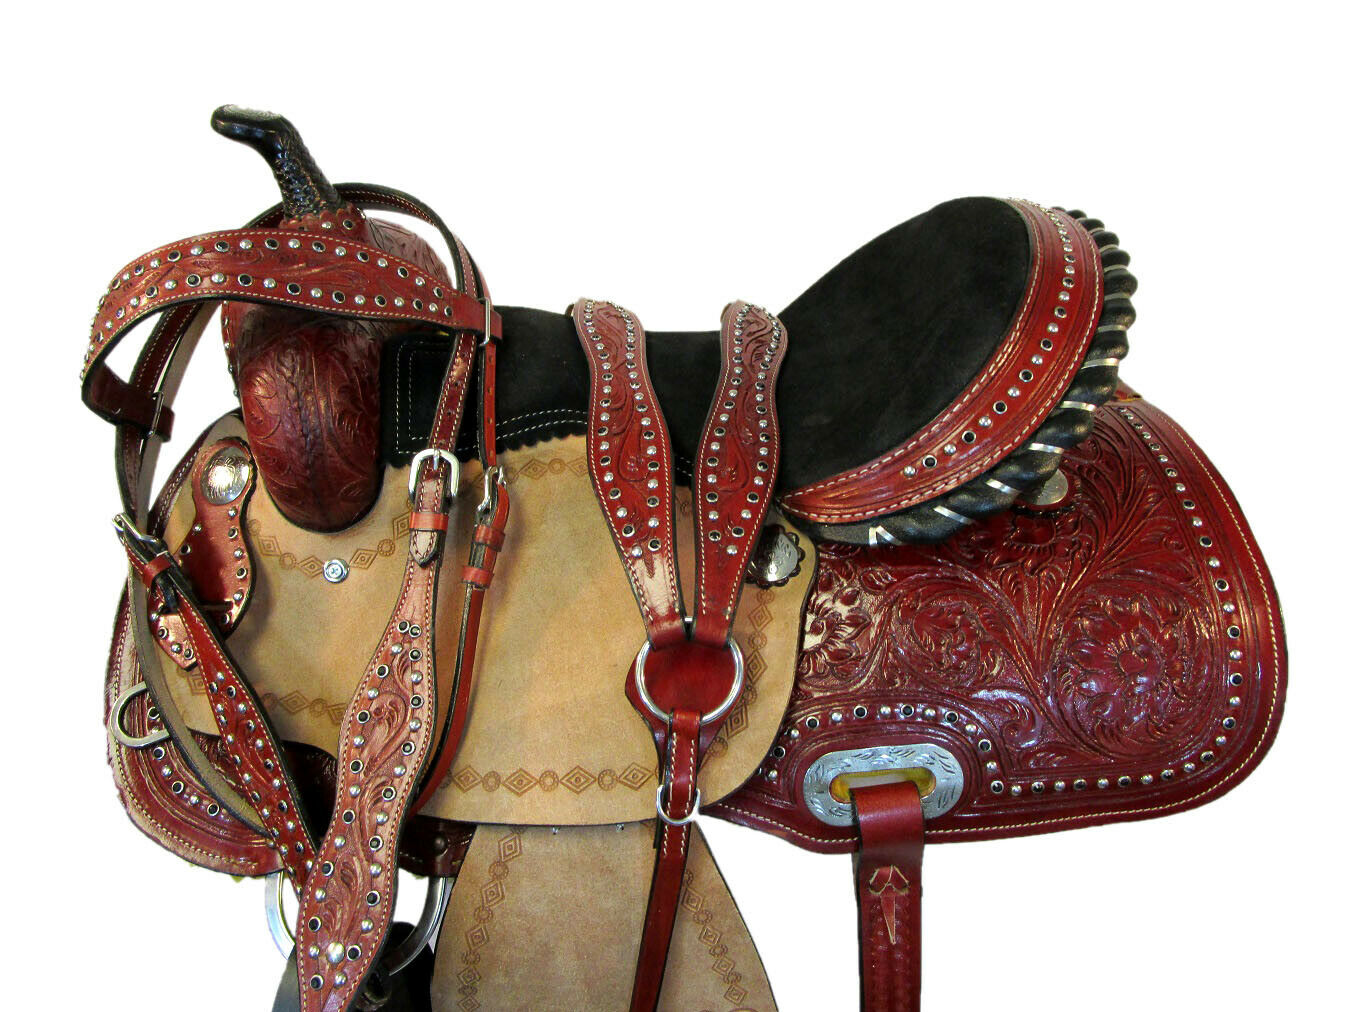 WESTERN COWBOY SADDLE 15 16 PLEASURE RACER RACING TRAIL strumentoED LEATHER BARREL